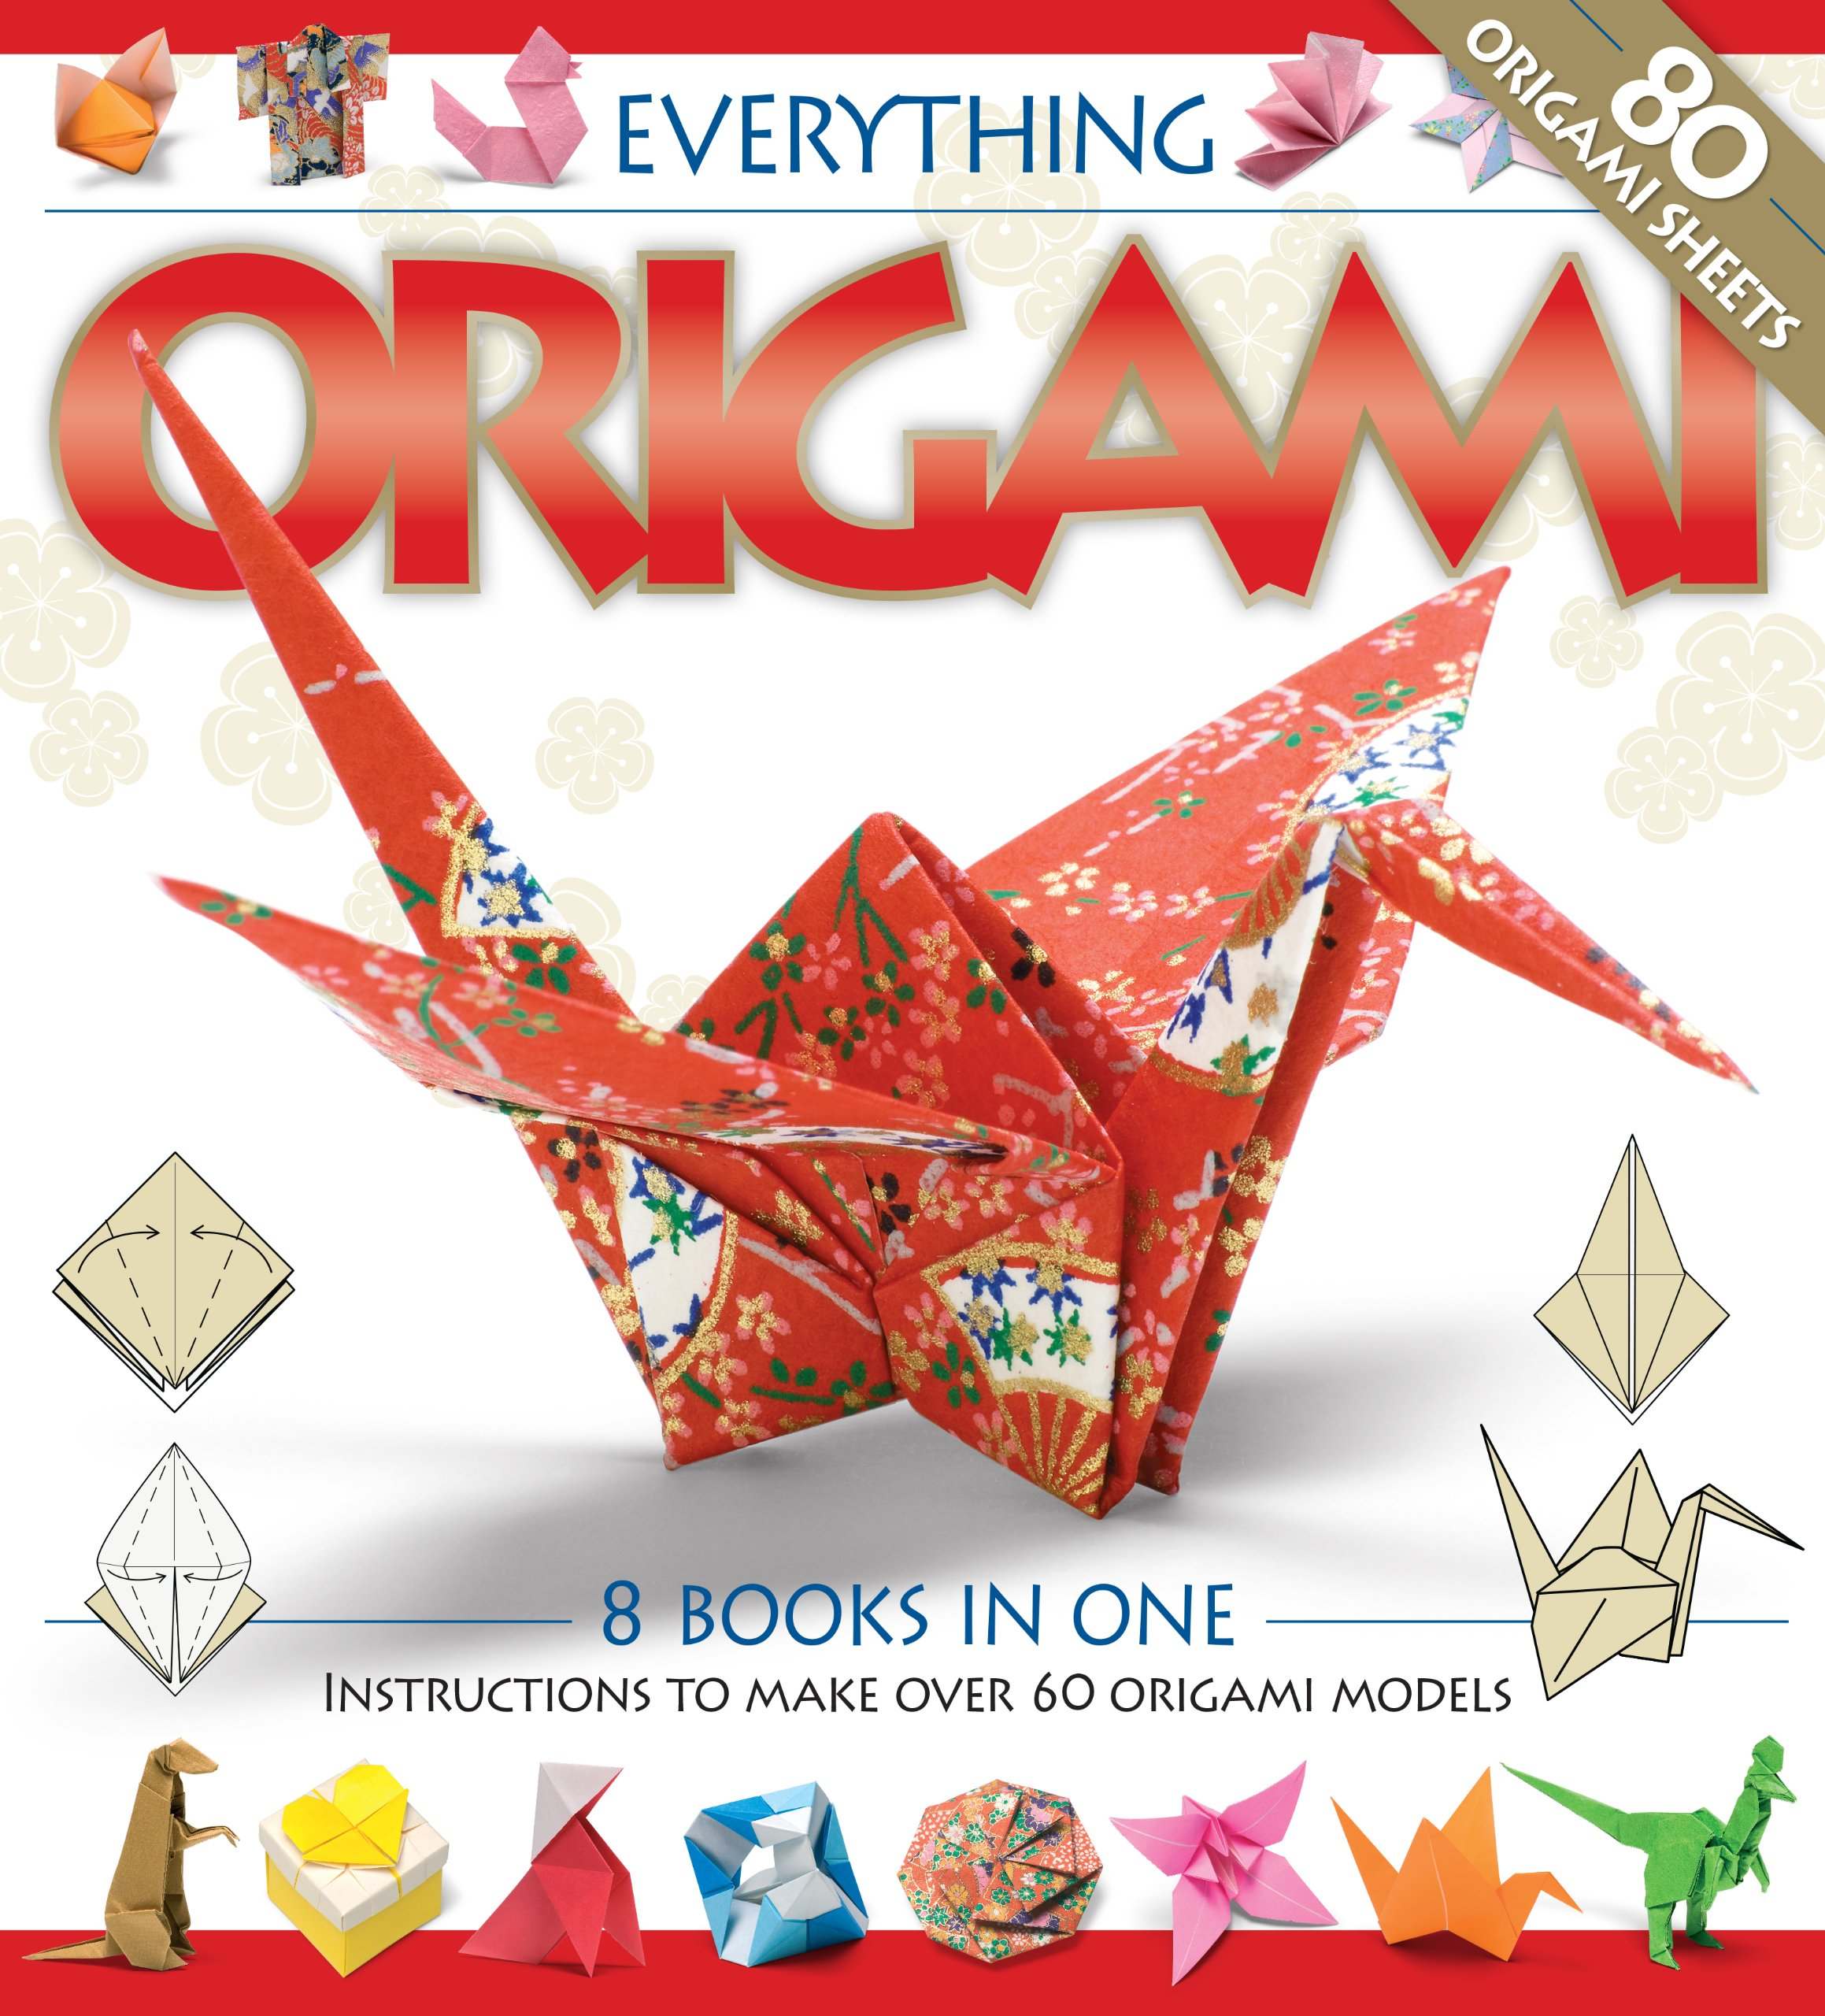 How Do You Make An Origami Swan How To Origami Swan Instructions ... | 2560x2318